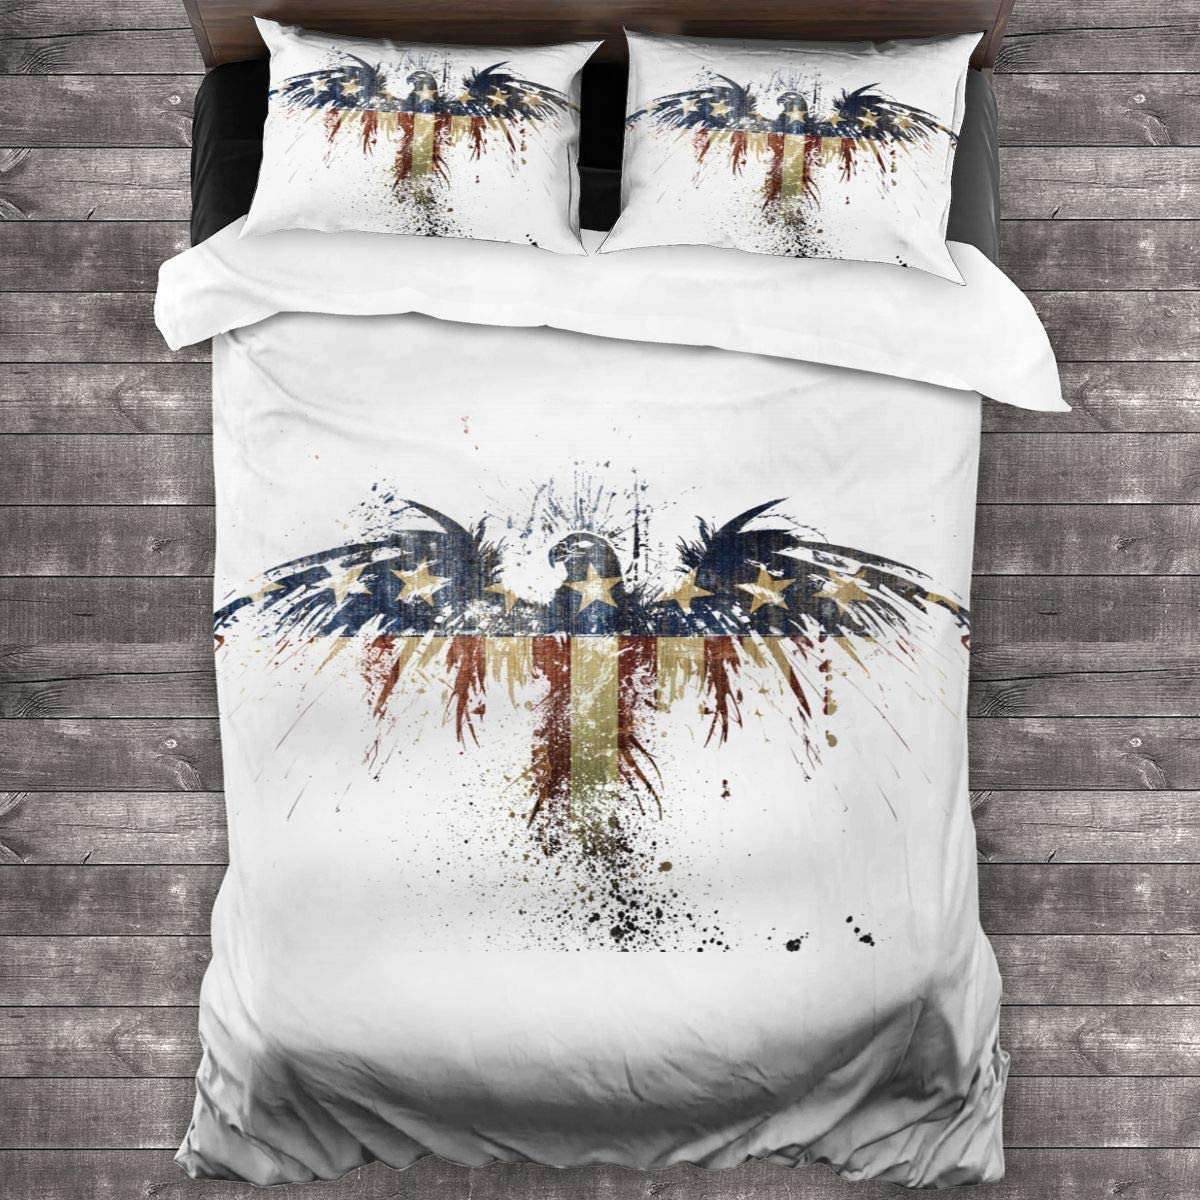 NOT Eagle American 2020 Dormitory Decoration Theme 3 Pieces of Bedding and 2 Pillowcases One Size